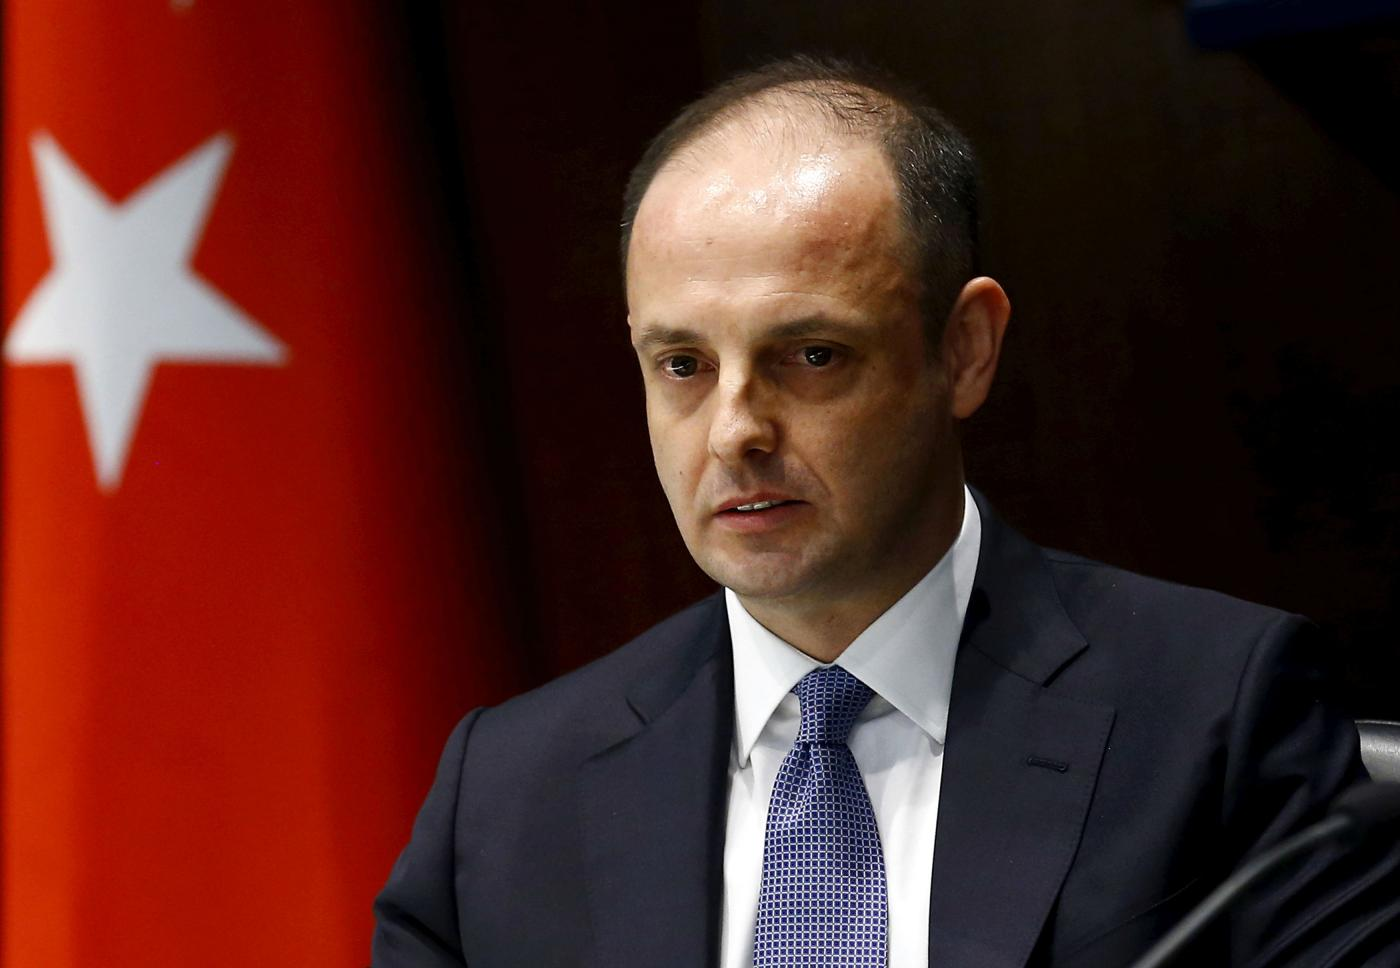 Erdogan says Turkish cenbank chief ousted for refusing rate cuts